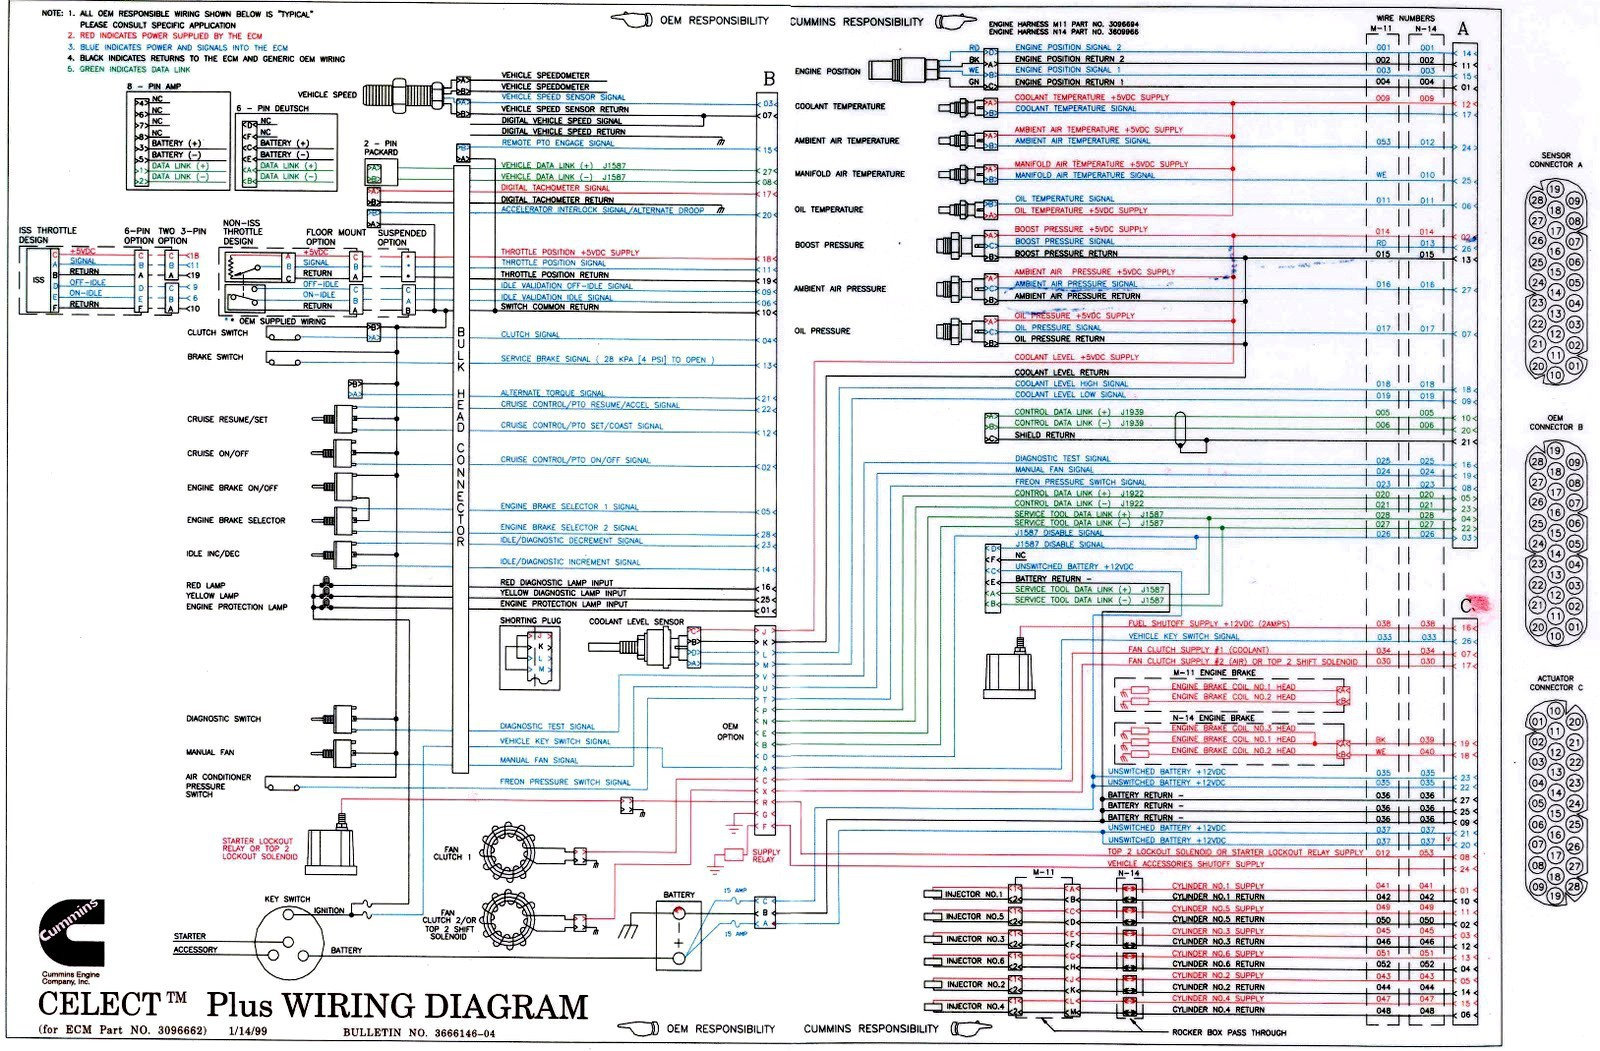 n14 celect ecm wiring diagram simple wiring diagram rh david huggett co uk  M11 Cummins Engine Electrical Diagram Cummins M11 Parts Diagram